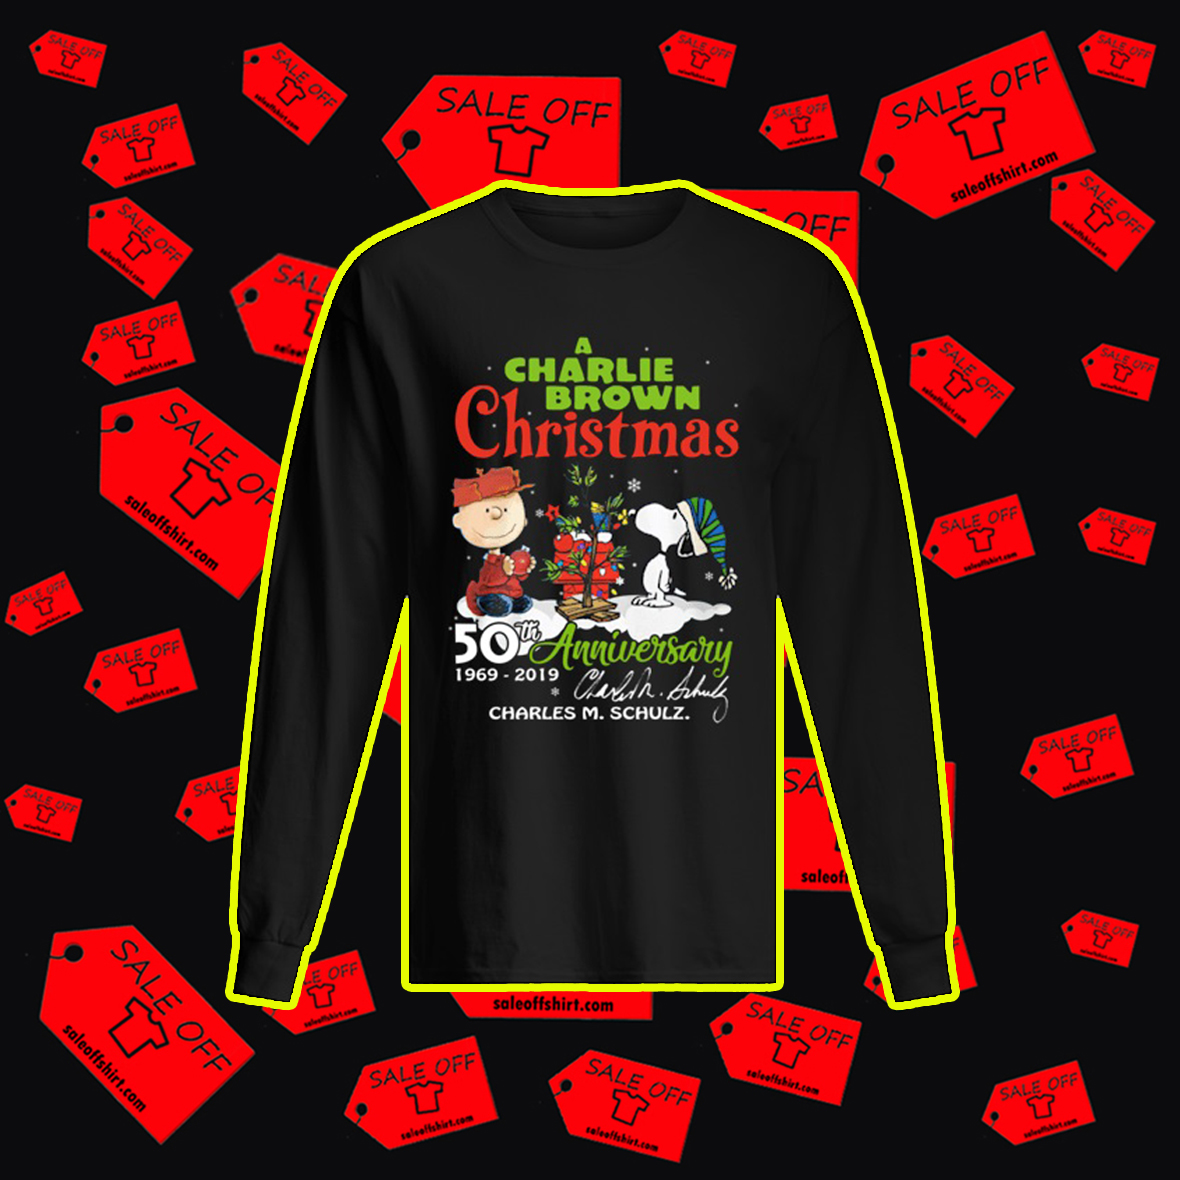 A Charlie Brown Christmas 50th Anniversary 1969 2019 Charles M. Schulz Signature sweatshirt